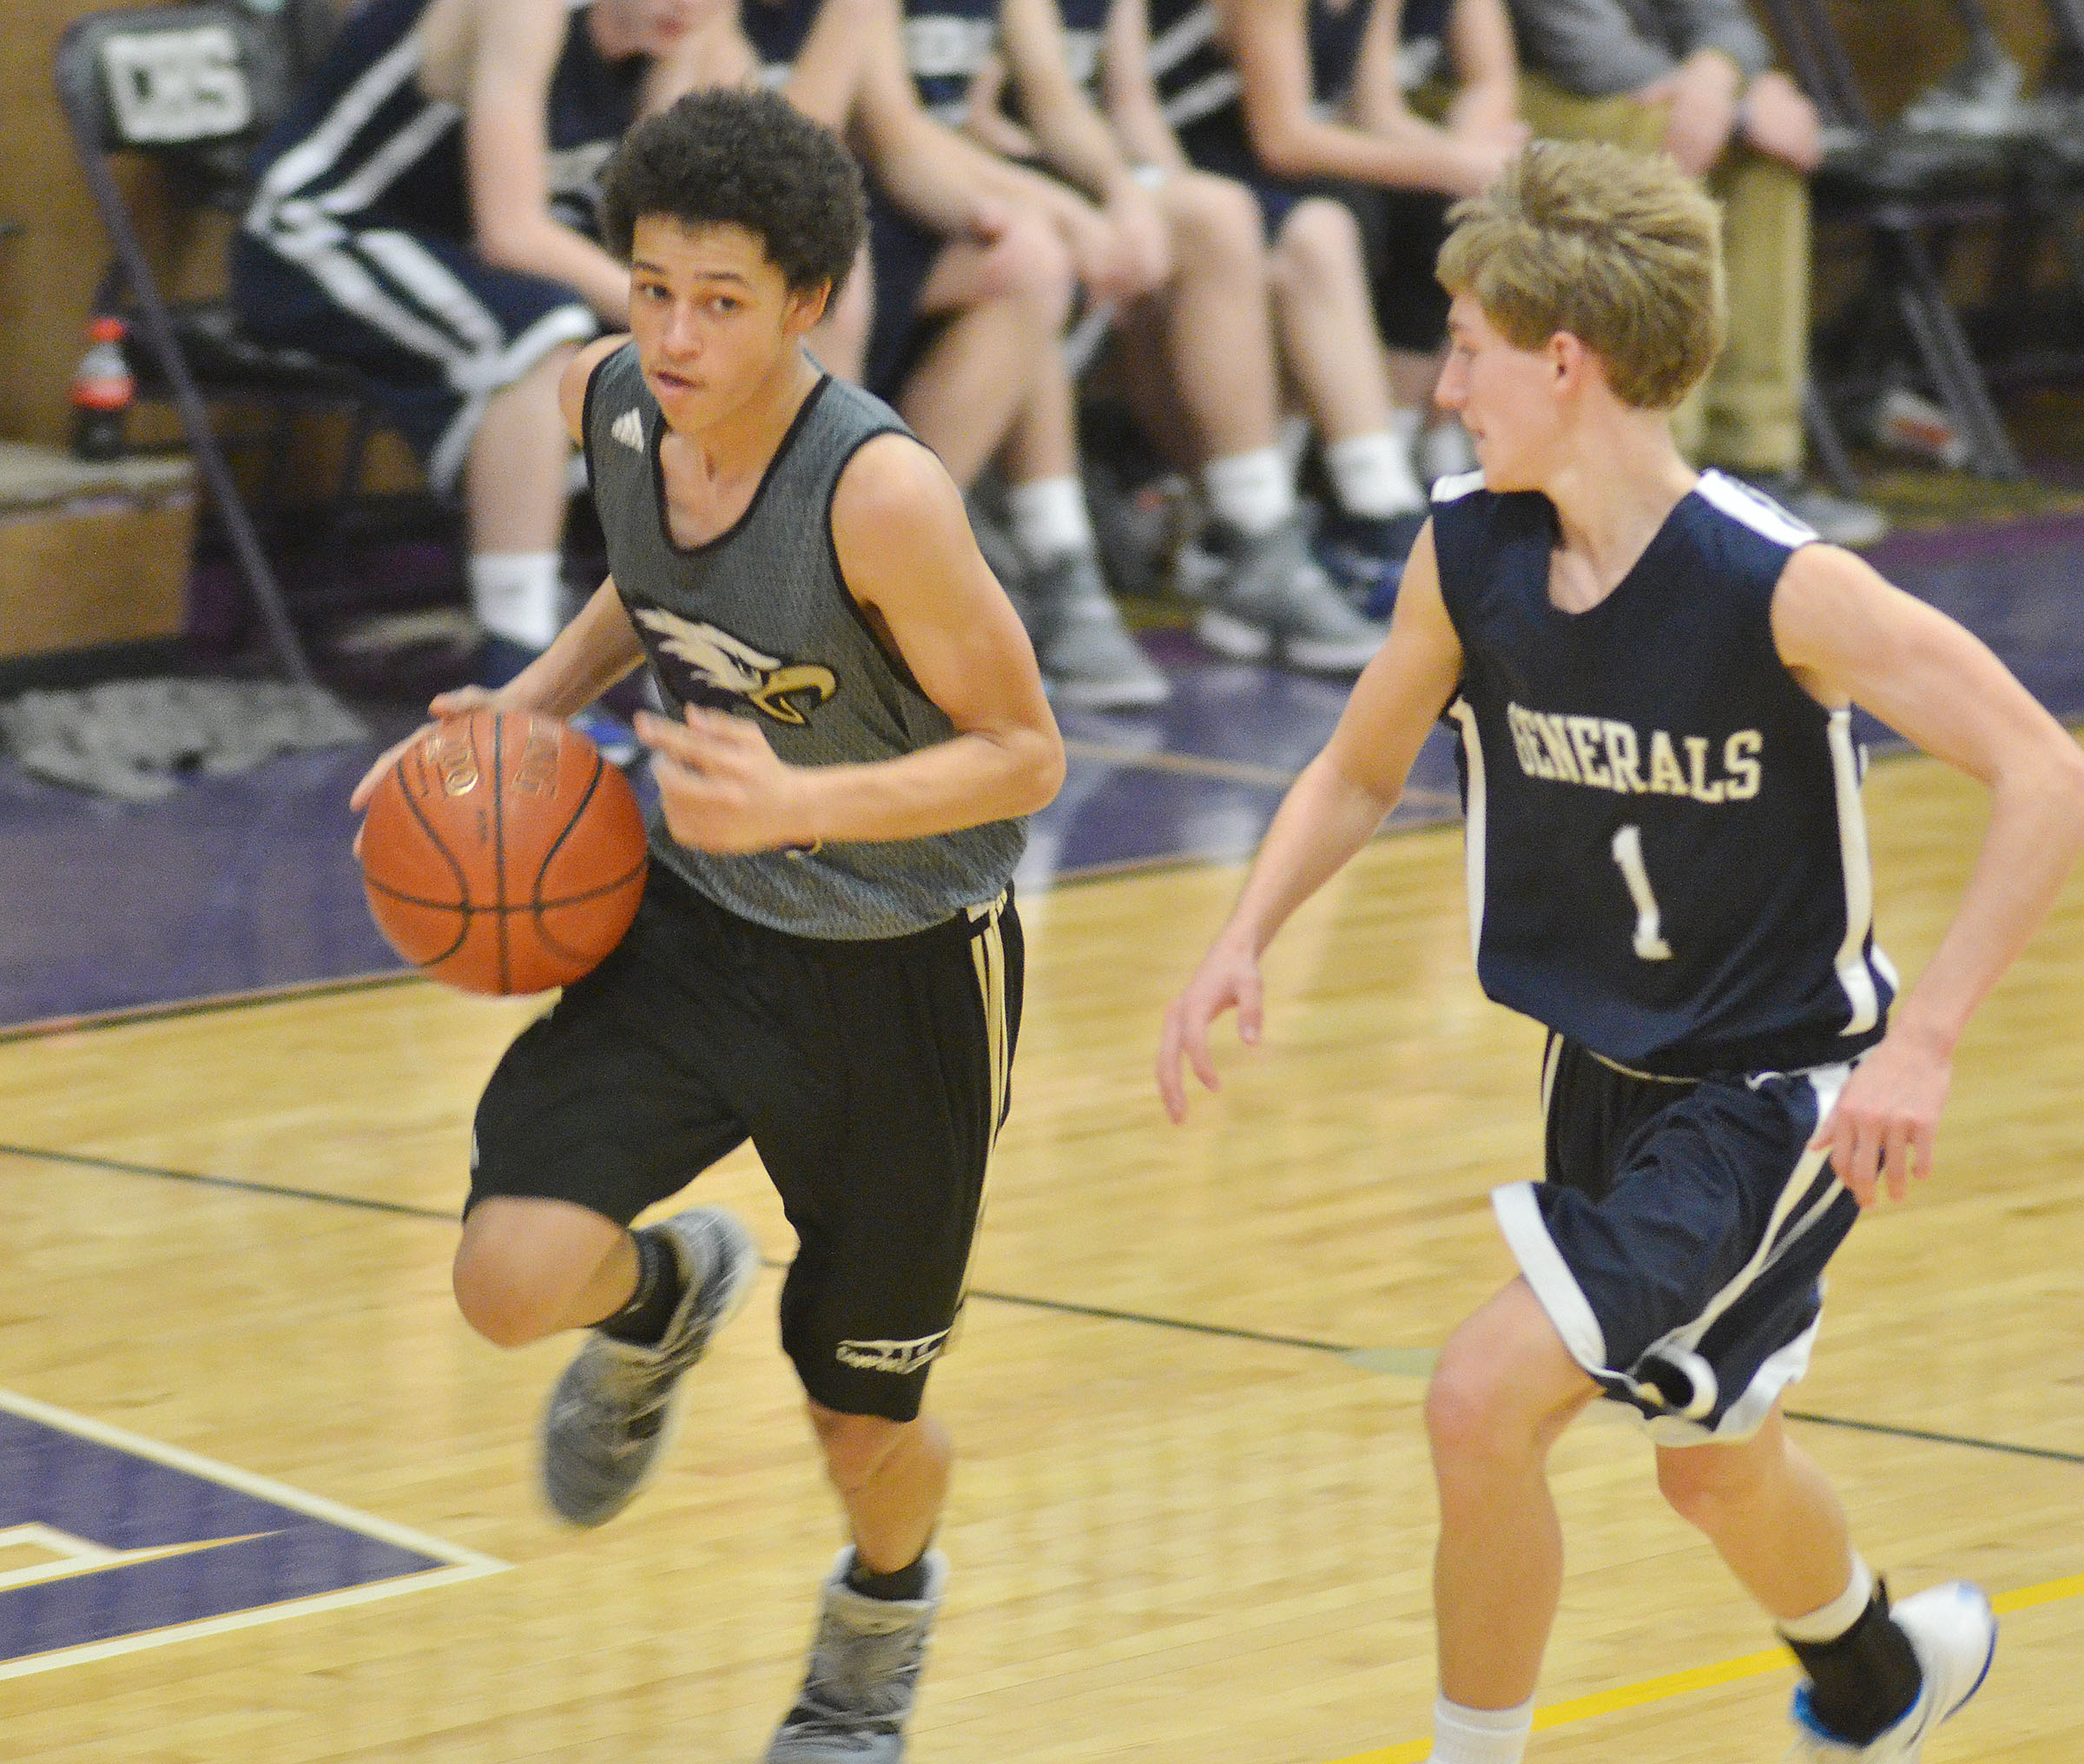 CHS freshman Mikael Vaught dribbles to the hoop.